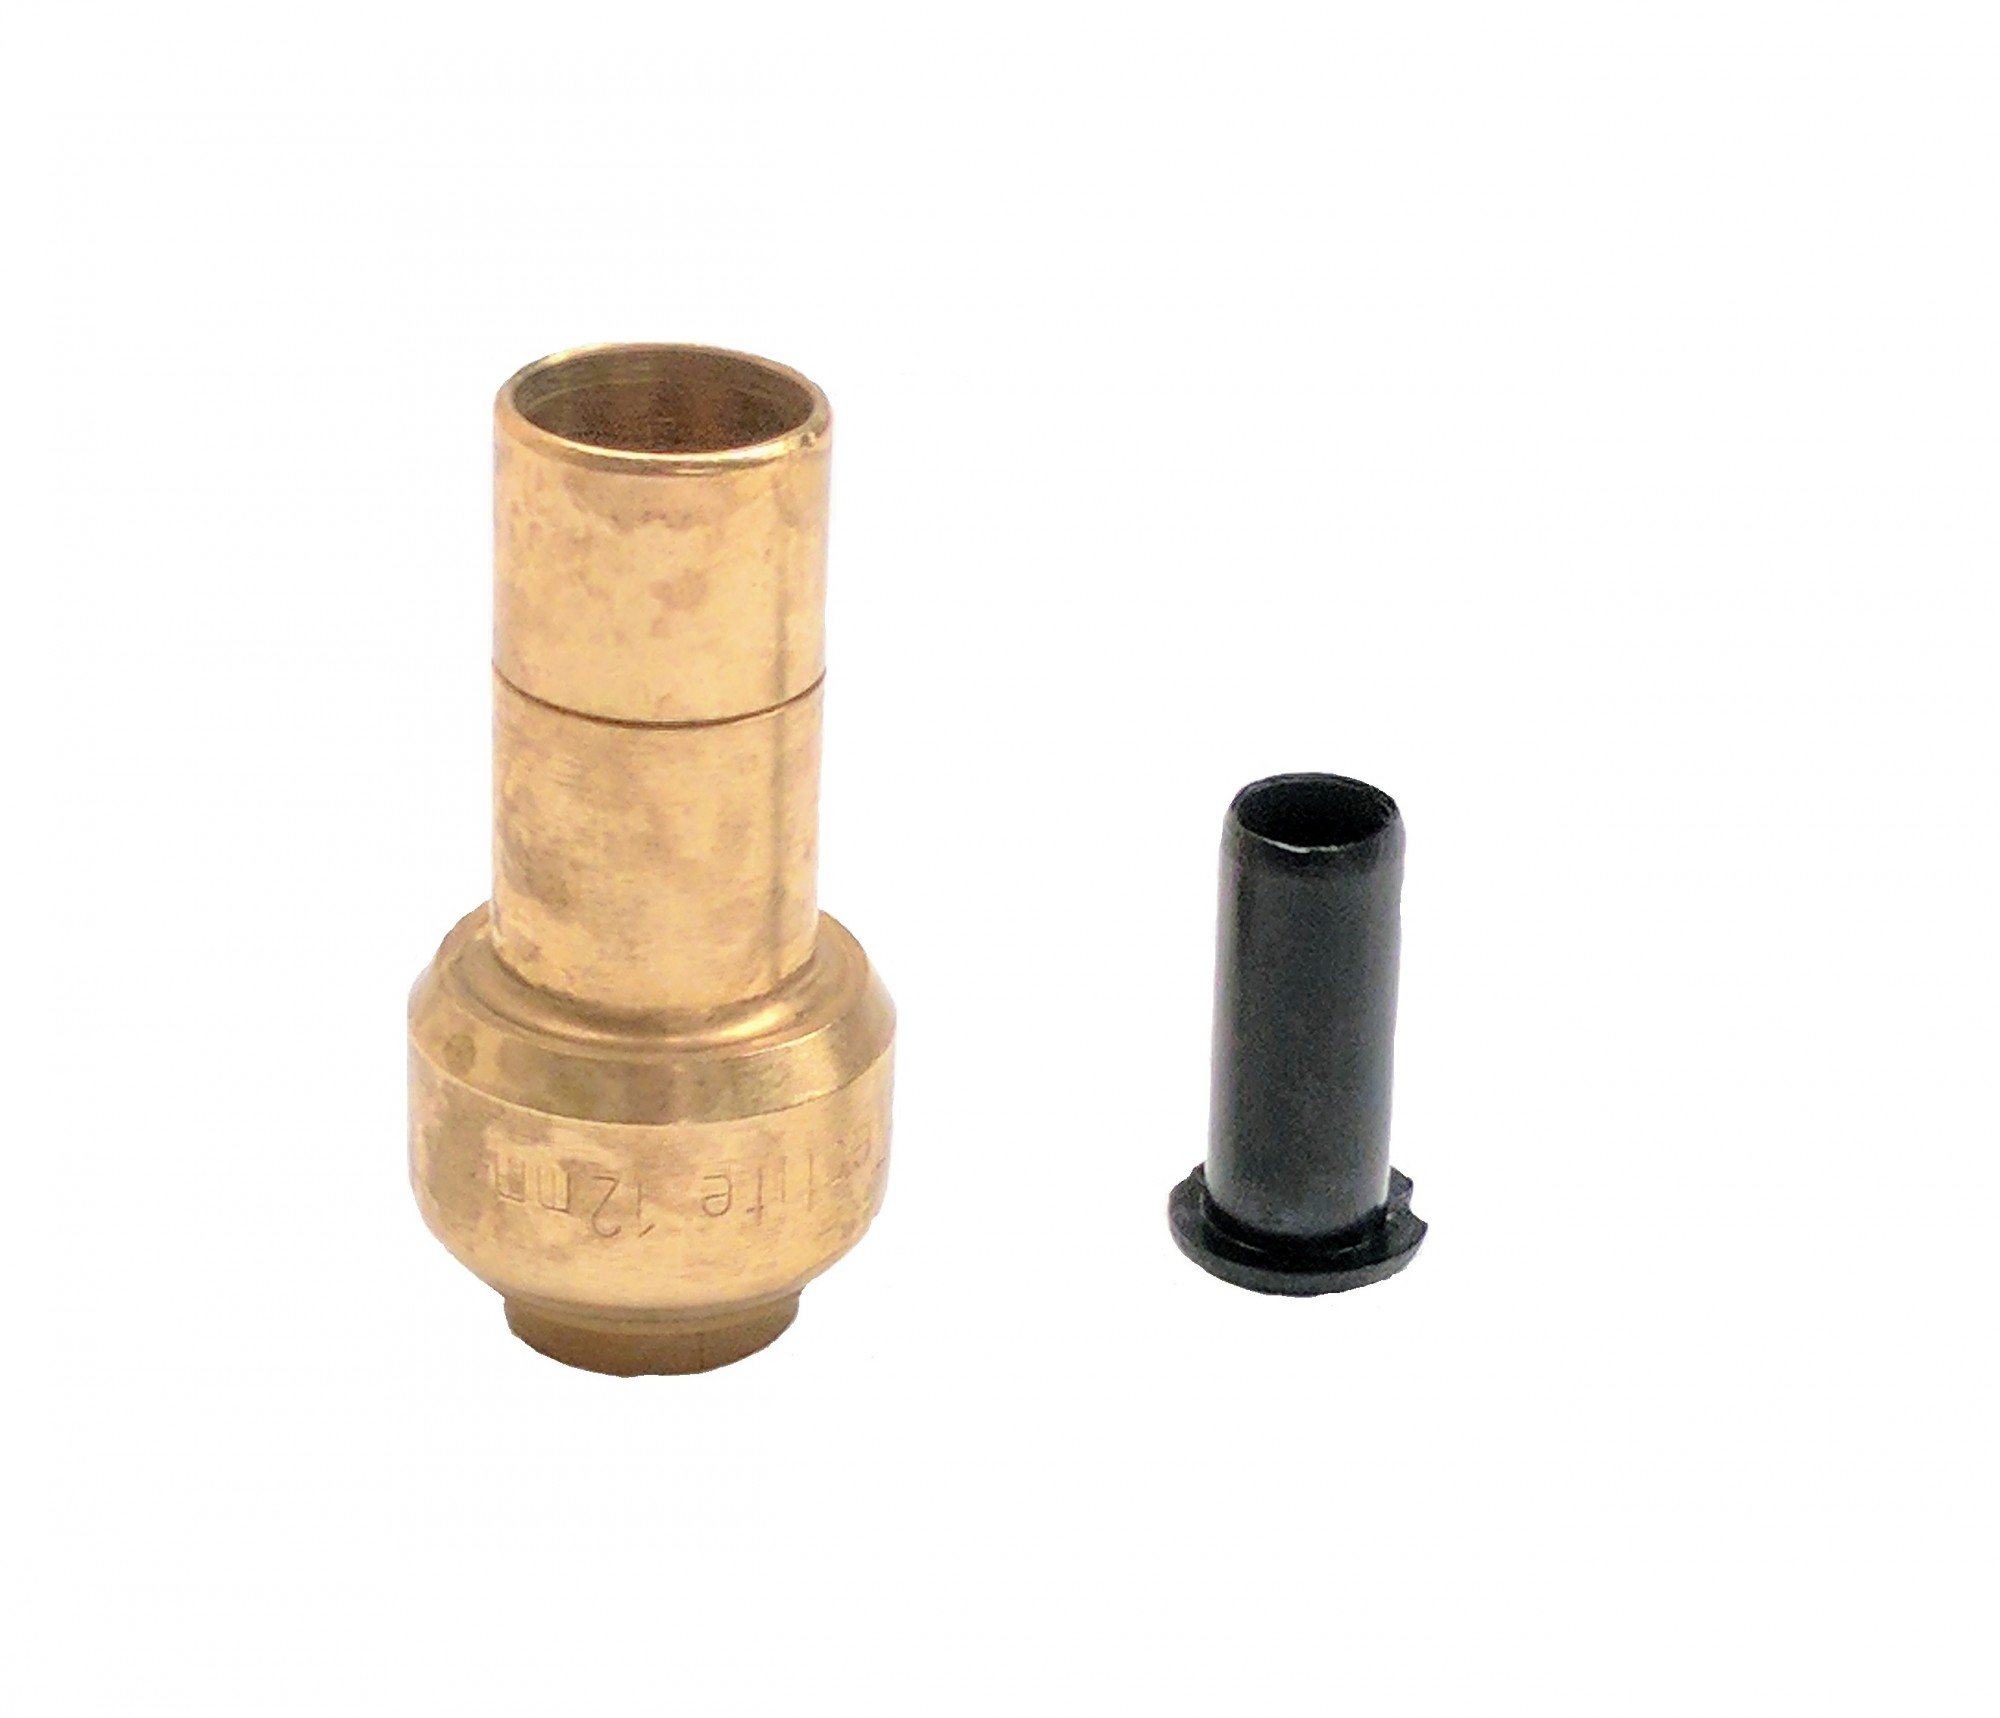 Polypipe Adaptor Set PB181512 - 2 pieces